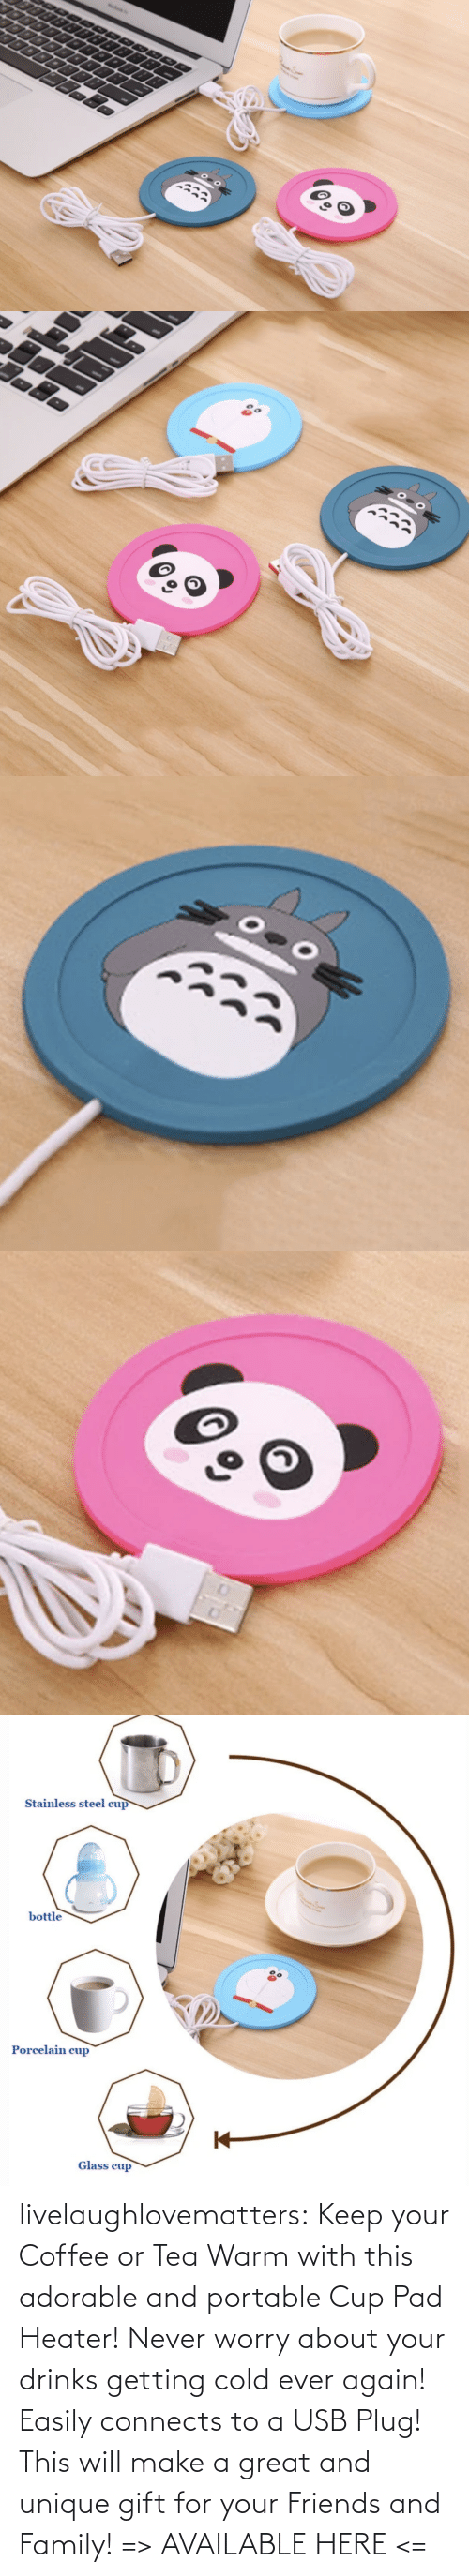 Easily: livelaughlovematters: Keep your Coffee or Tea Warm with this adorable and portable Cup Pad Heater! Never worry about your drinks getting cold ever again! Easily connects to a USB Plug! This will make a great and unique gift for your Friends and Family! => AVAILABLE HERE <=